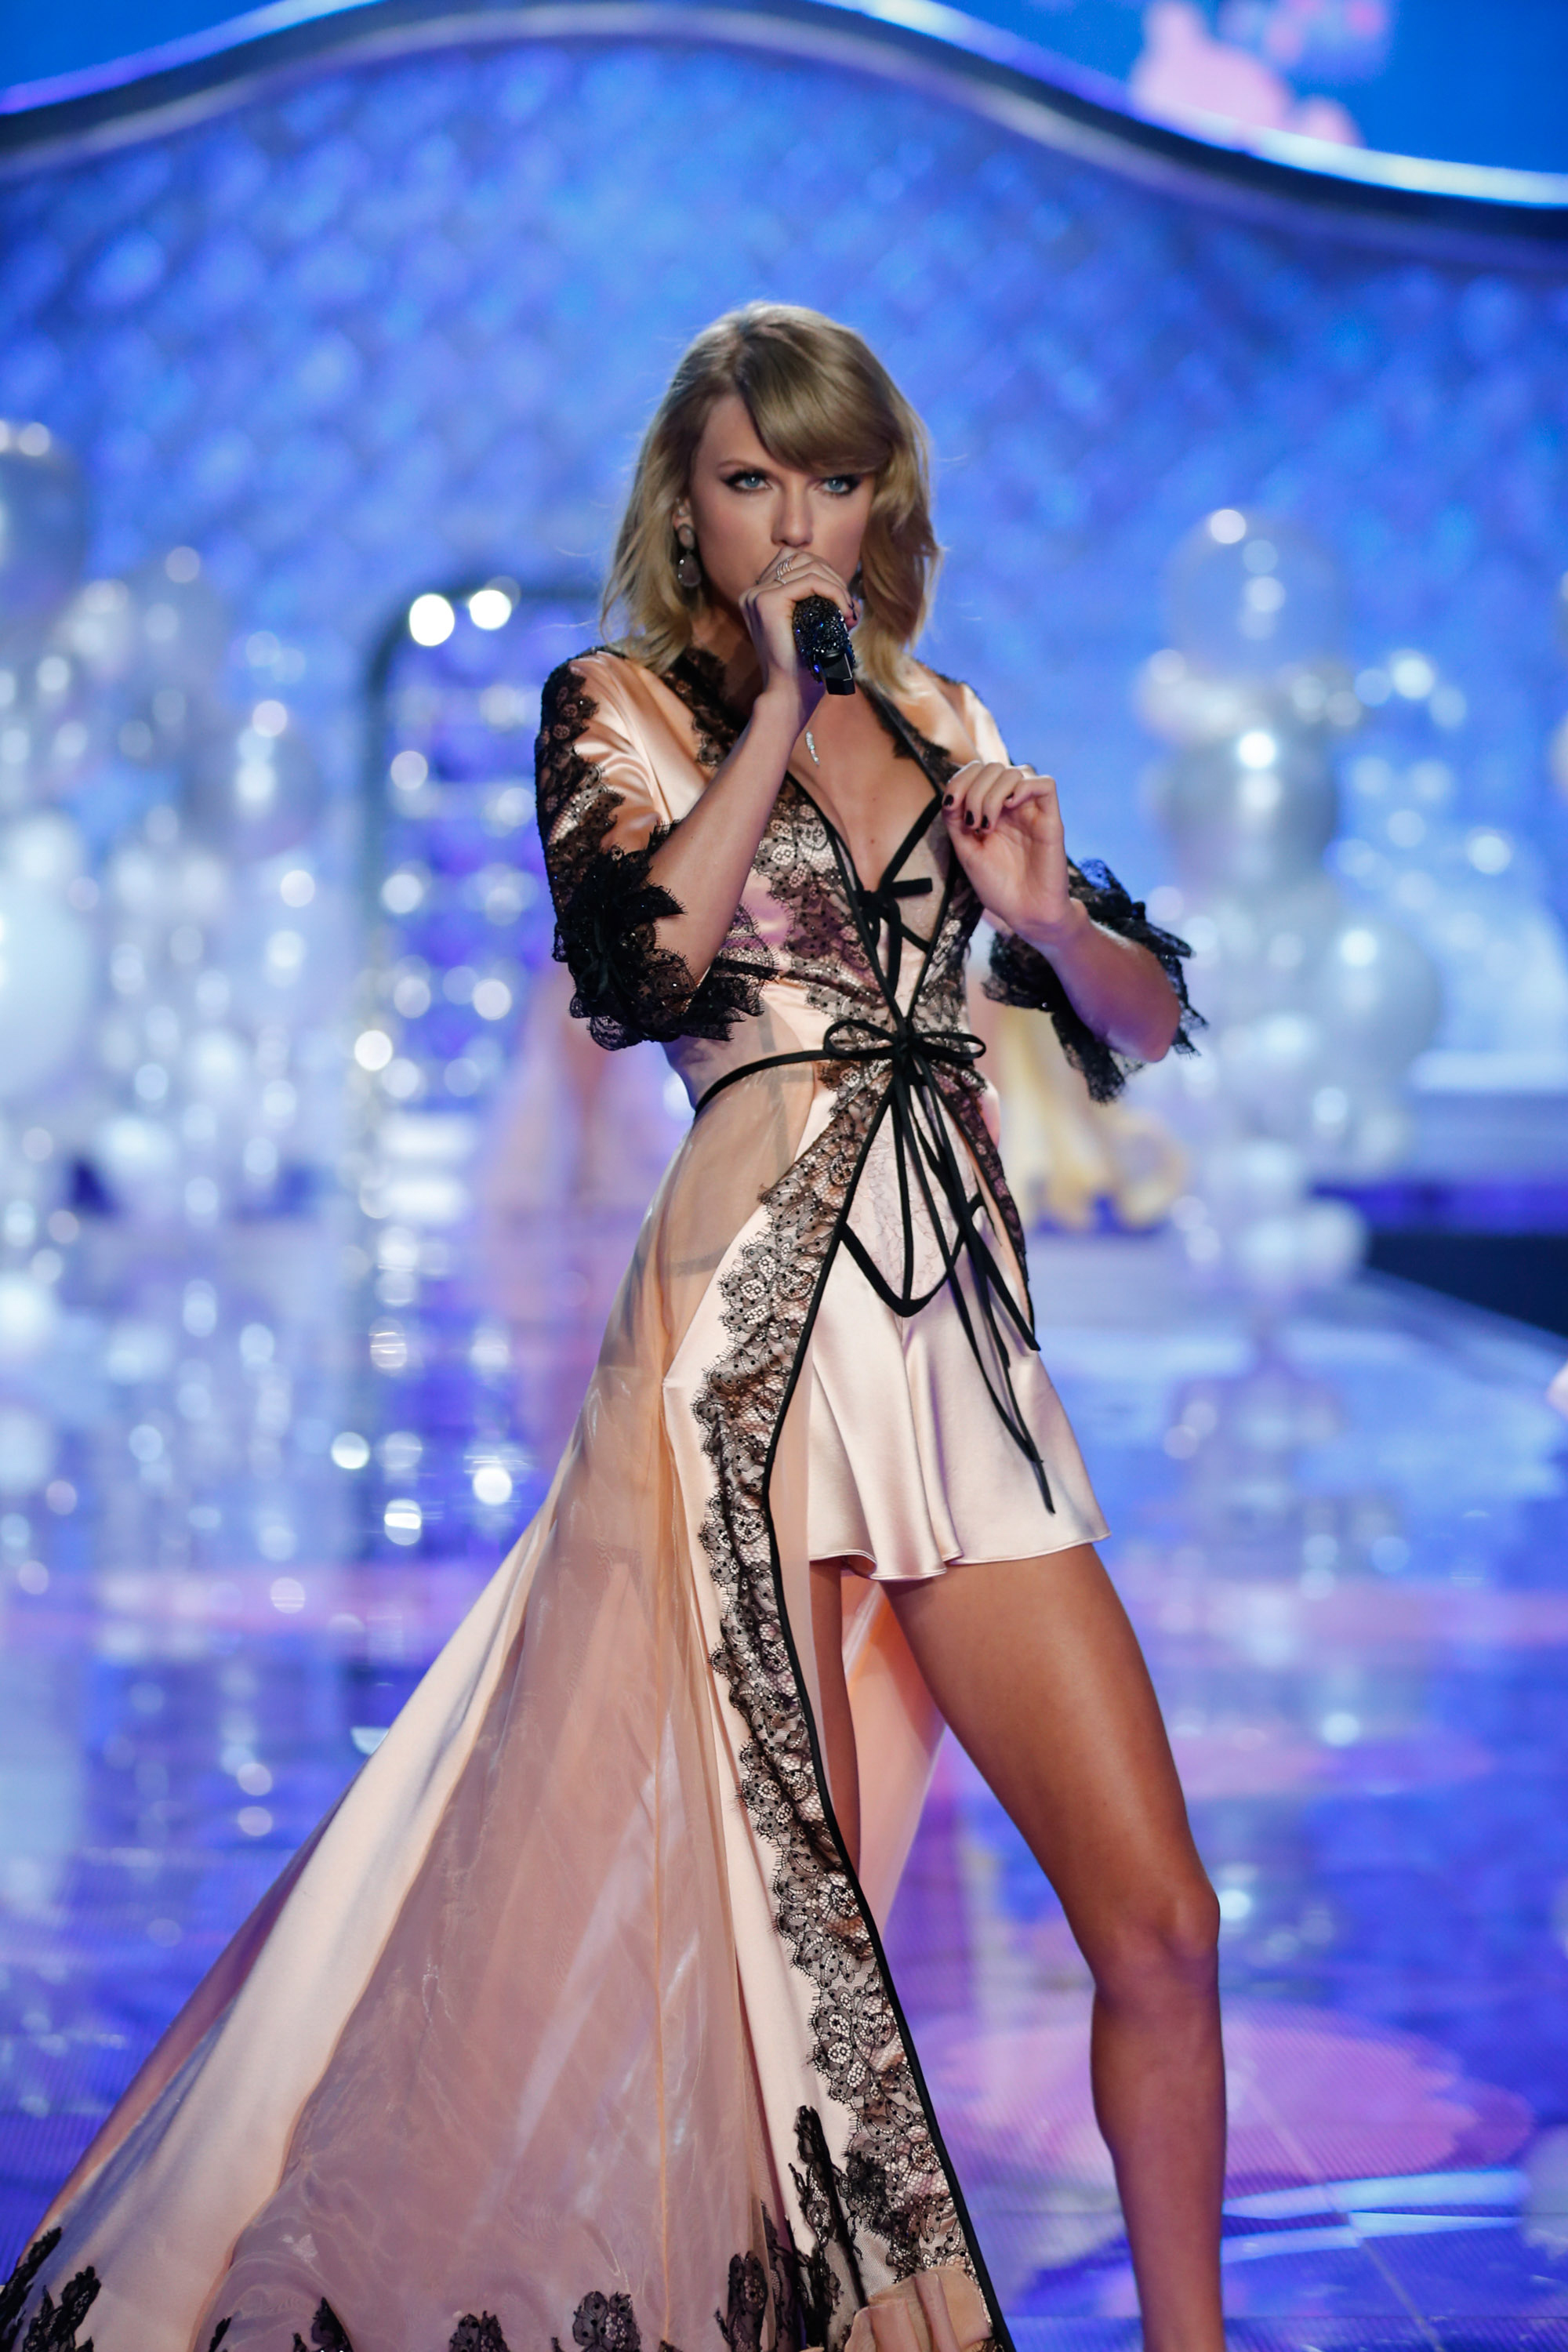 Beautiful Famous Singer Taylor Swift Modeling & Singing For The Victoria's Secret Fashion Show Modeling As One Of The Highest Paid Singers In The World.